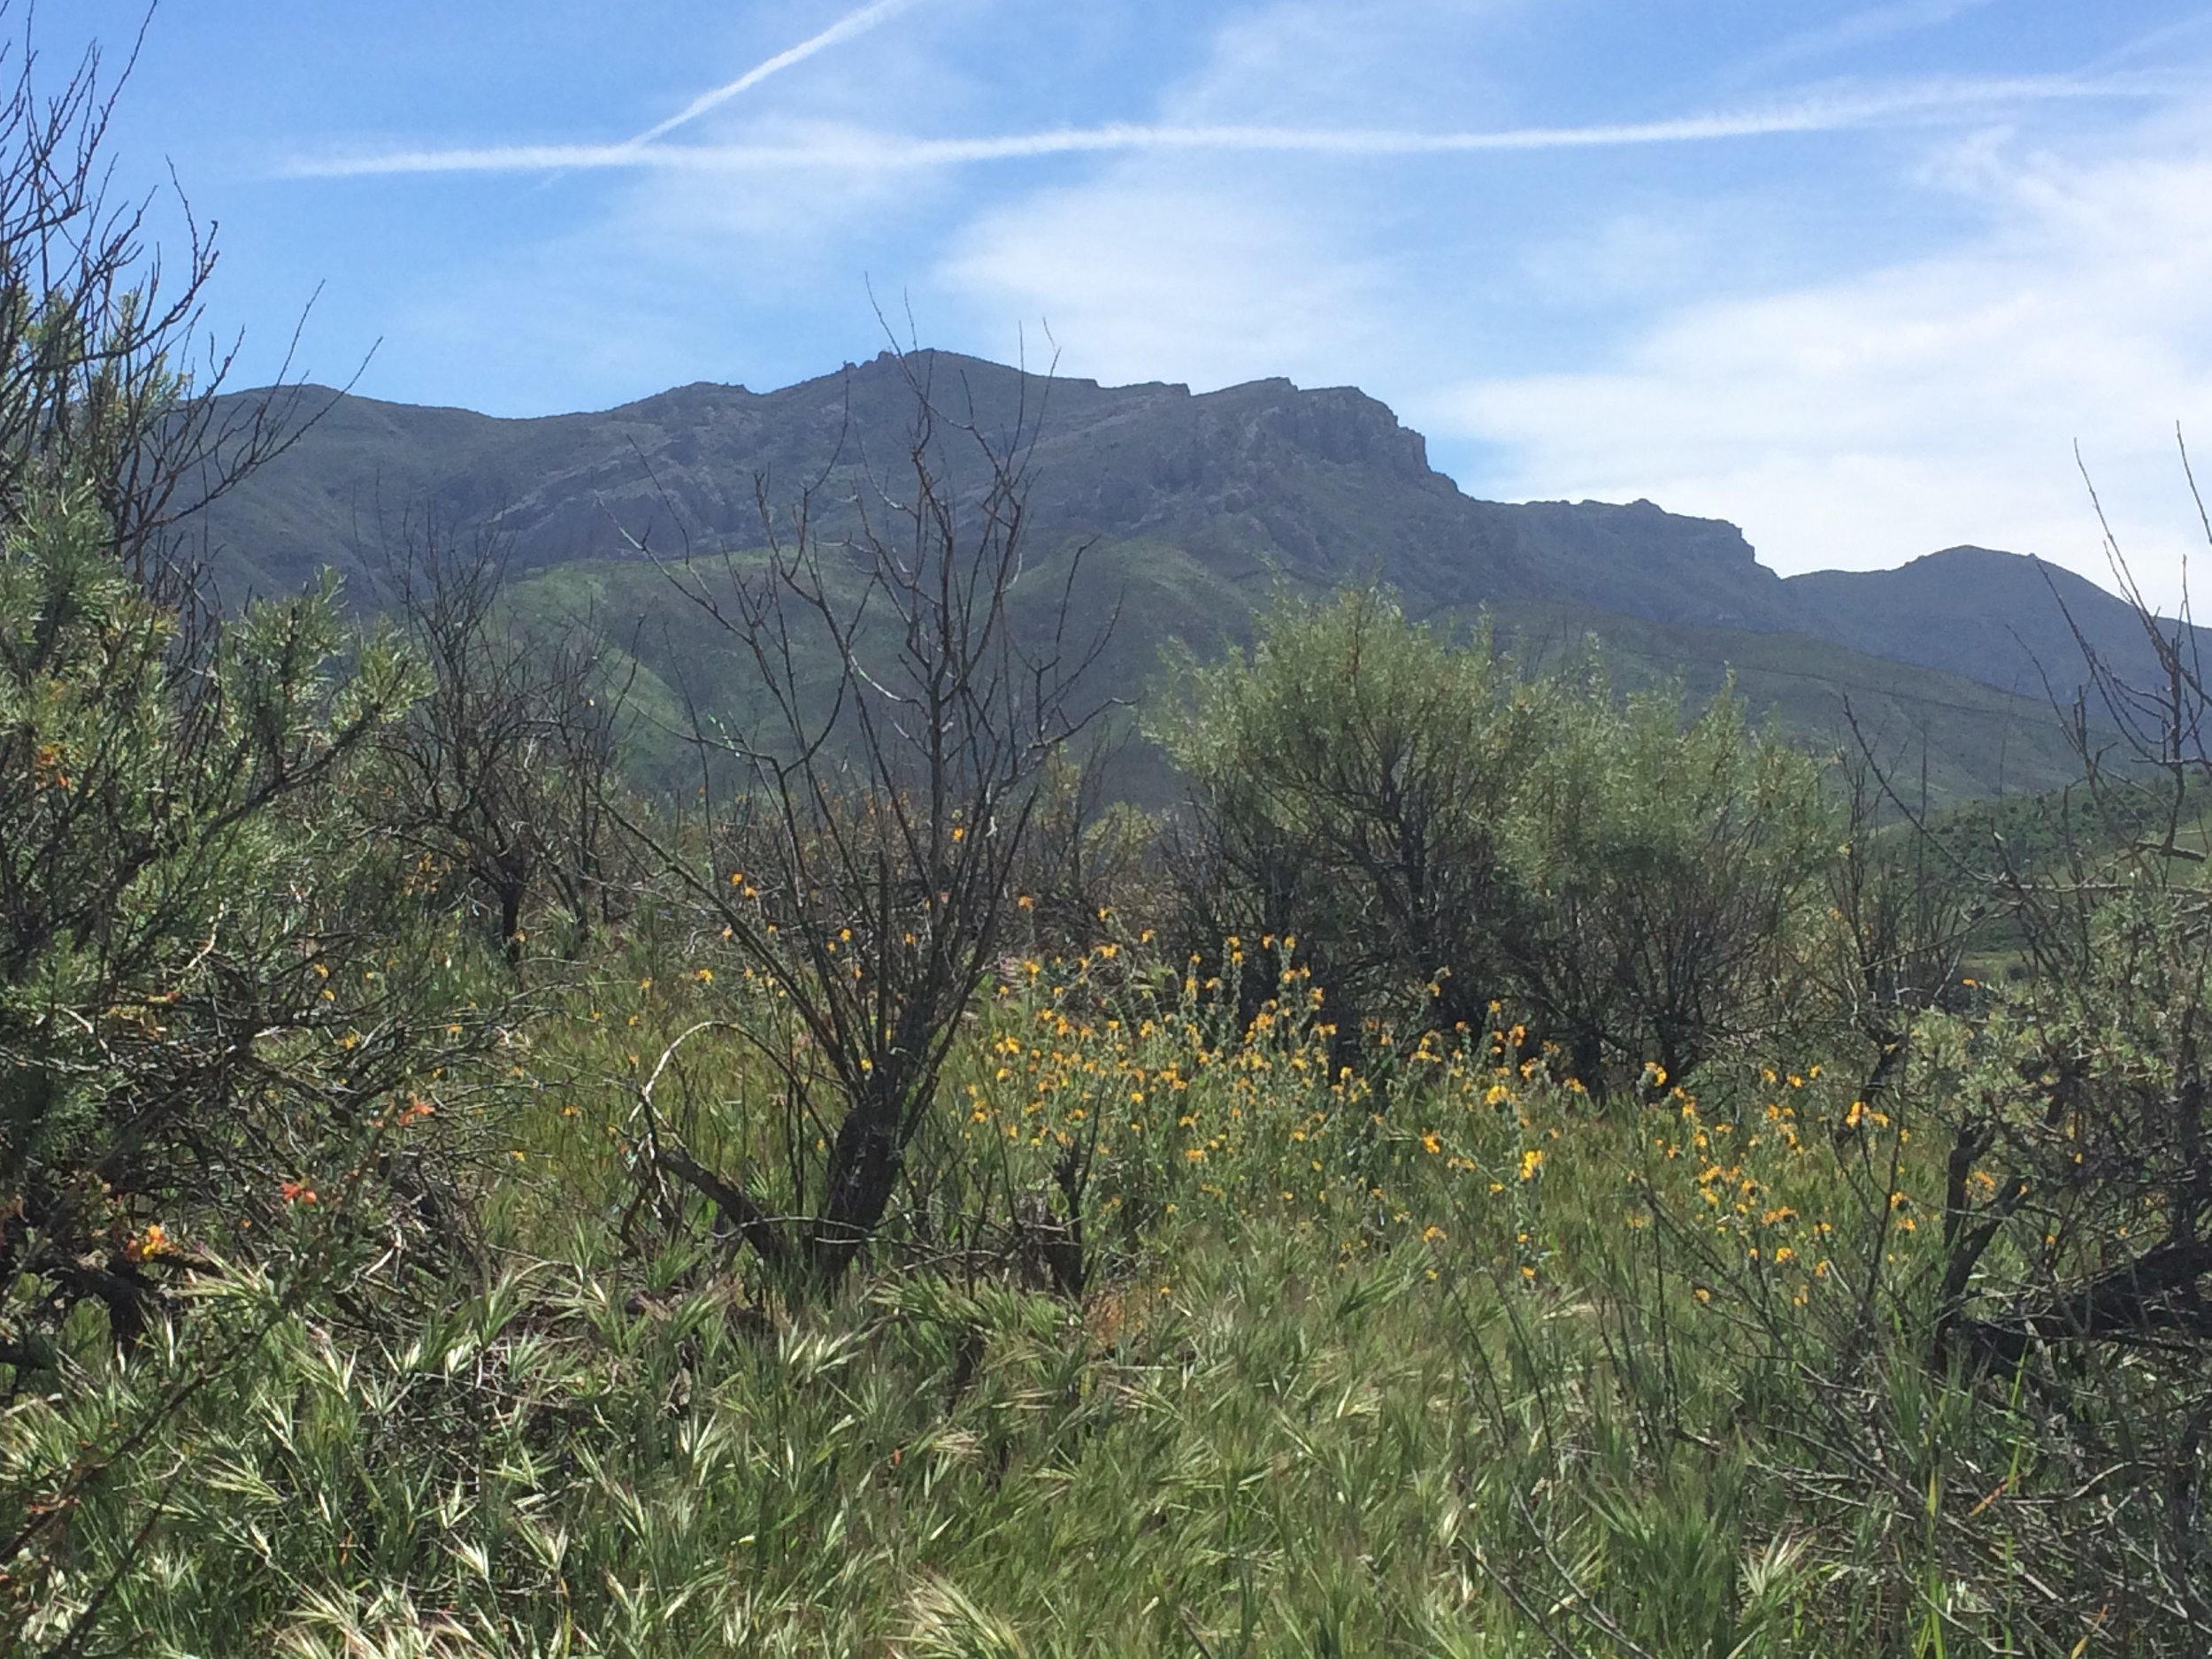 California's native coastal sage scrub has been heavily invaded by nonnative, invasive annual grasses, such as the  Bromus rubens  shown here in the foreground. In the Santa Monica Mountains (pictured here) I've found these annual grasses displace native wildflowers and reduce the establishment of native shrub seedlings.